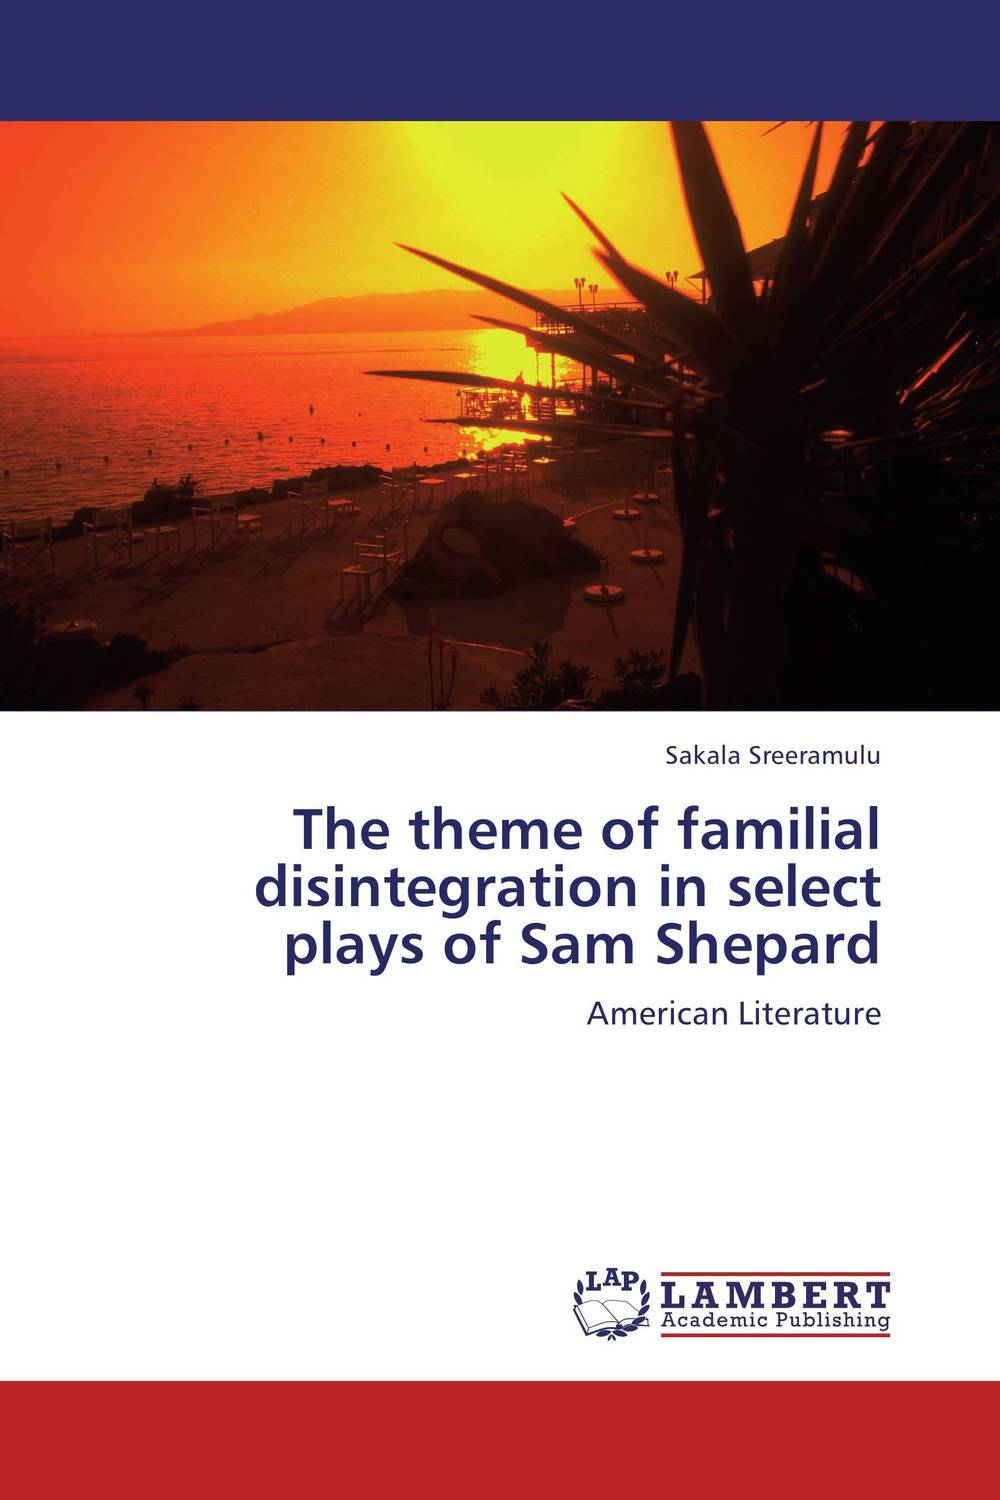 The theme of familial disintegration in select plays of Sam Shepard the theme of familial disintegration in select plays of sam shepard